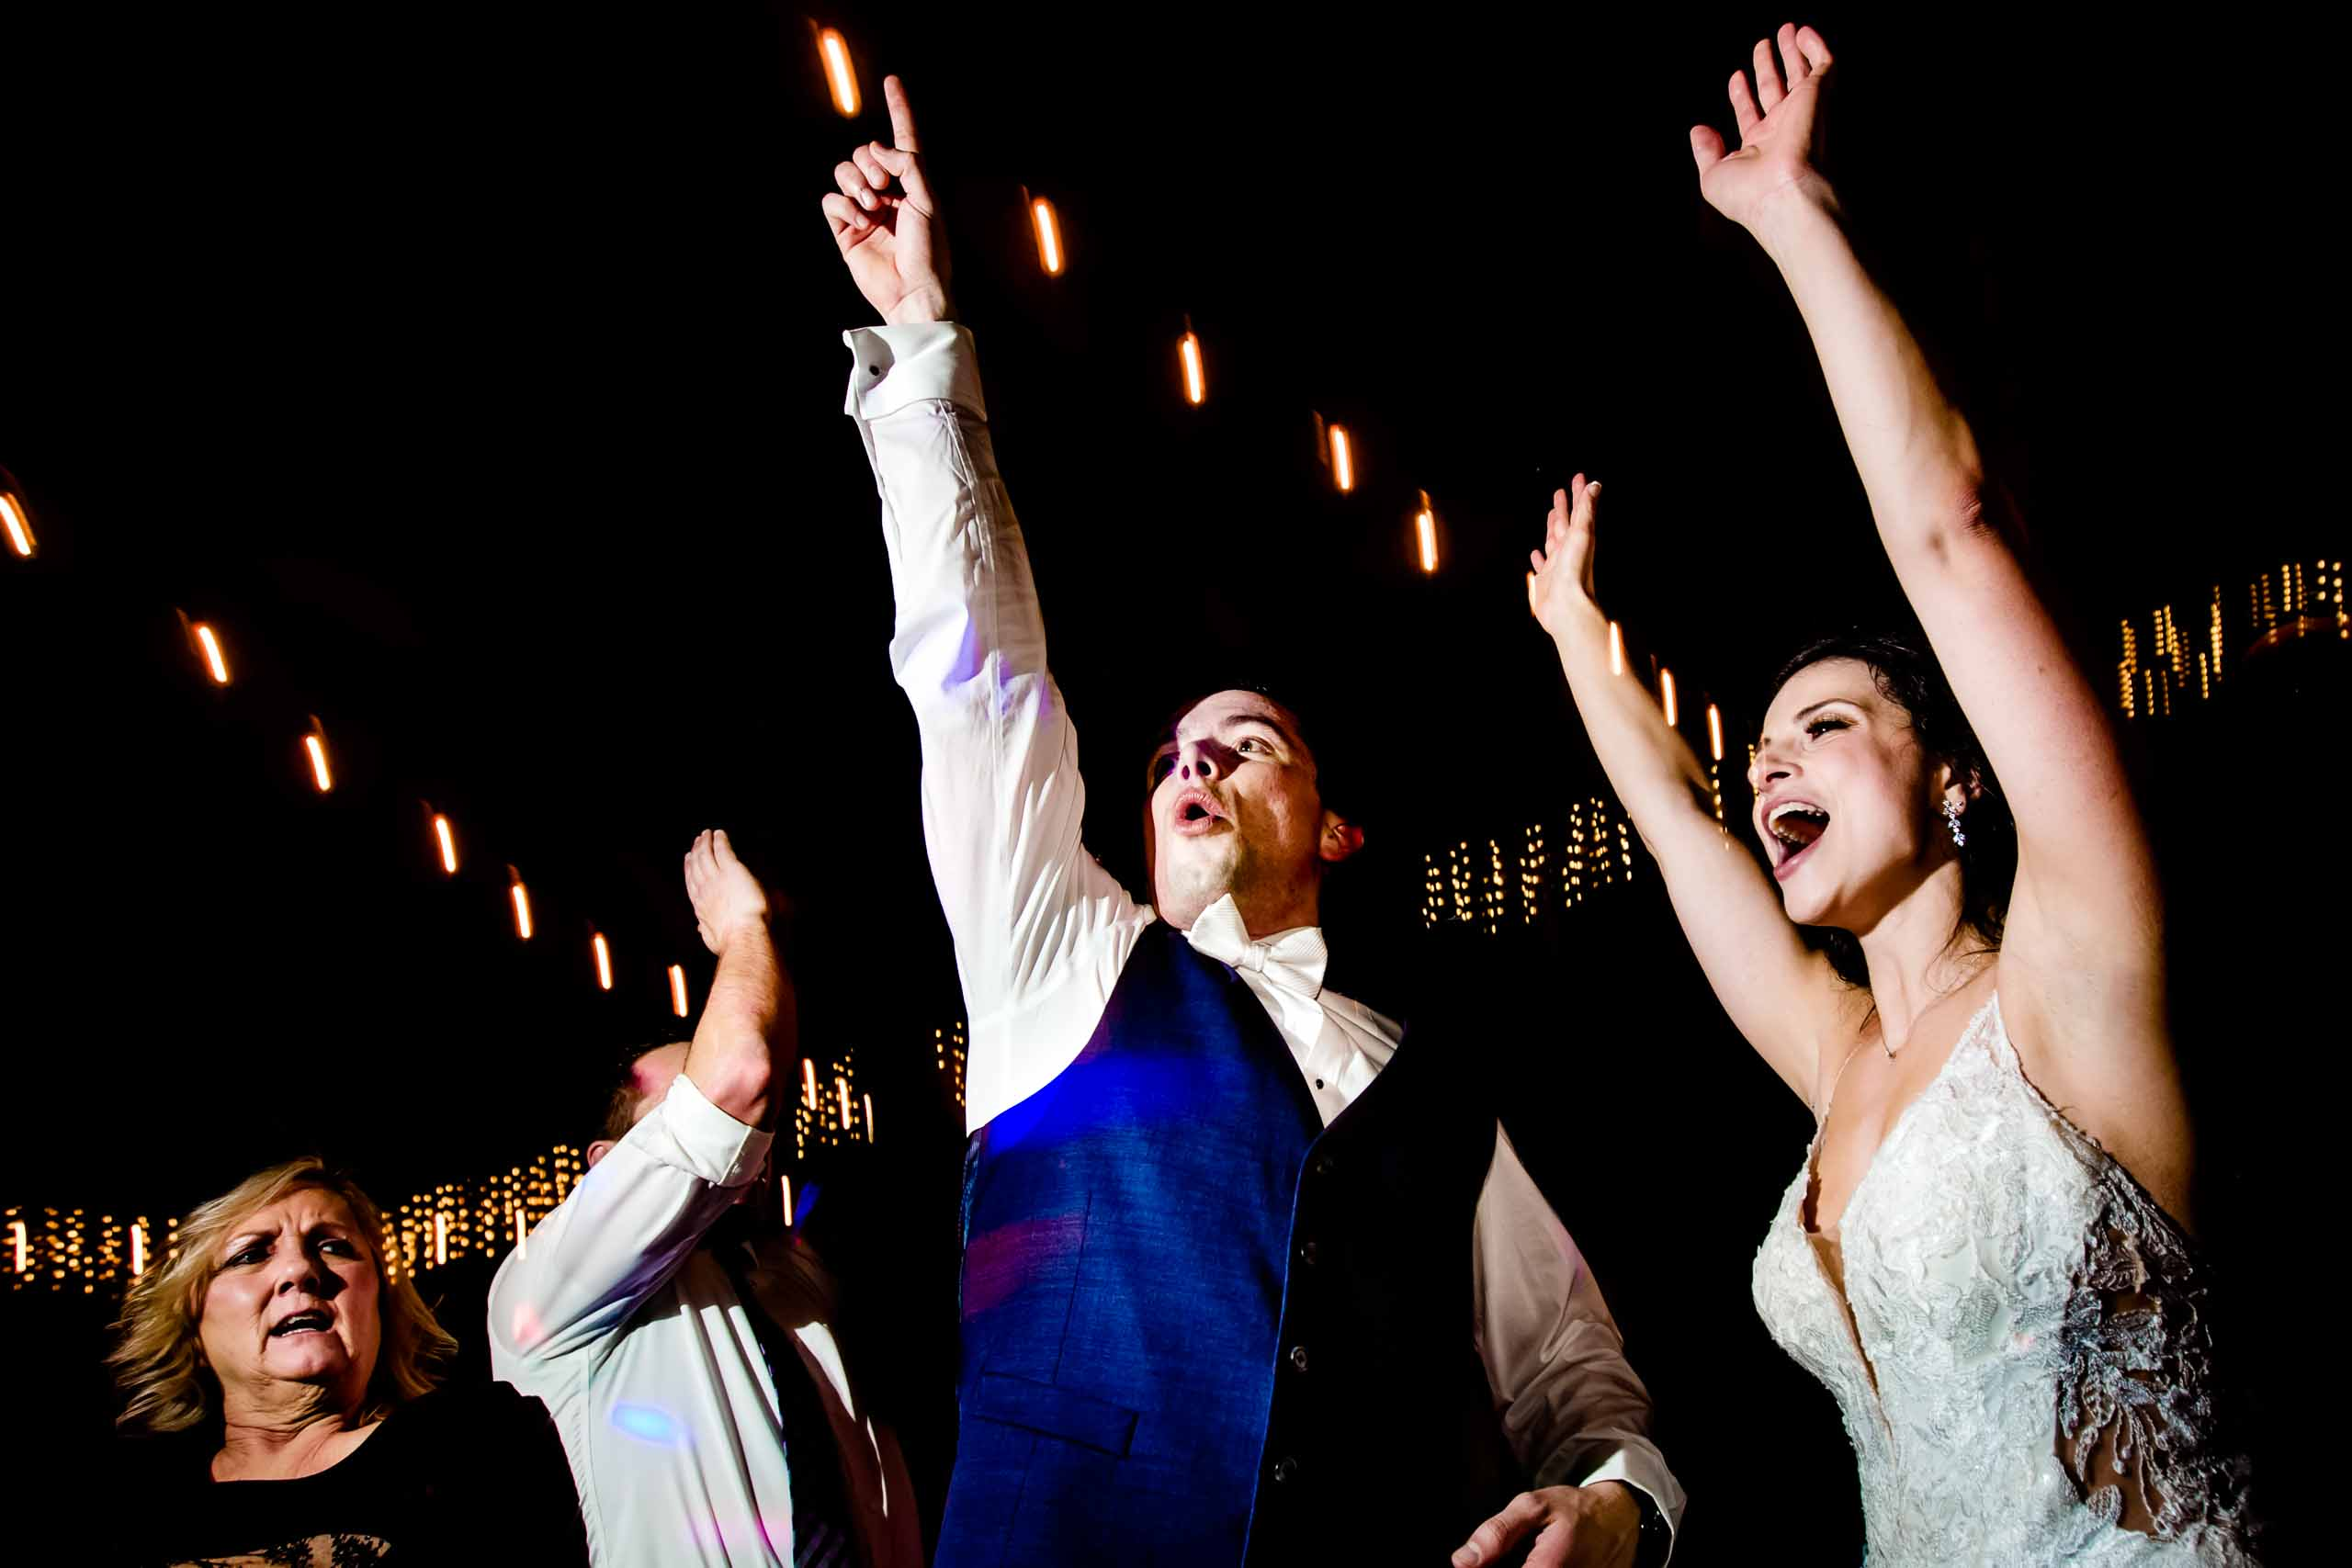 Super fun photo of a bride and groom jumping during their Sunriver Resort wedding reception in Oregon